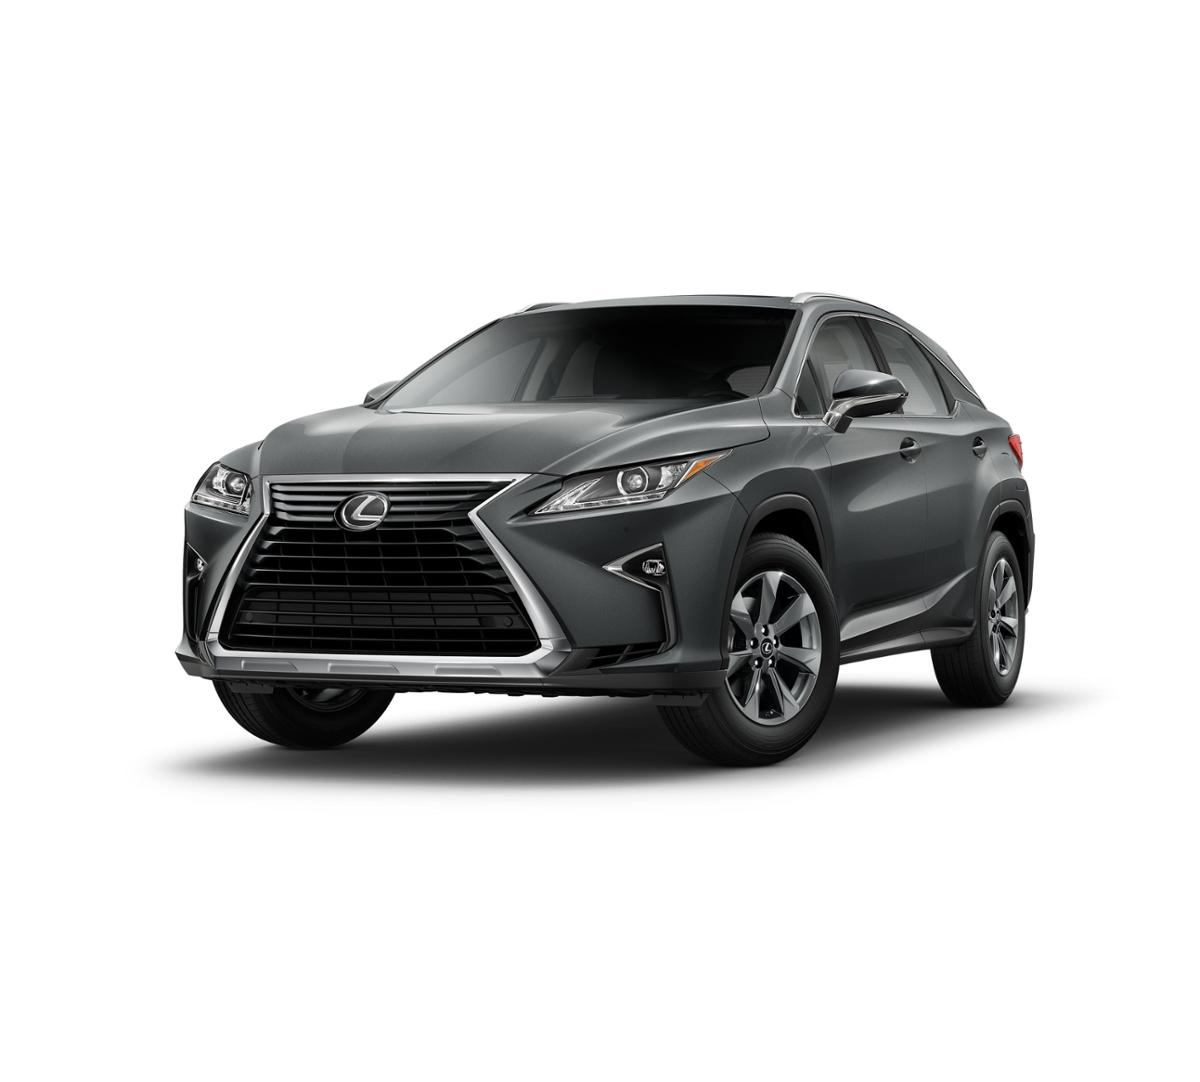 2018 Lexus RX 350 Vehicle Photo in Santa Barbara, CA 93105